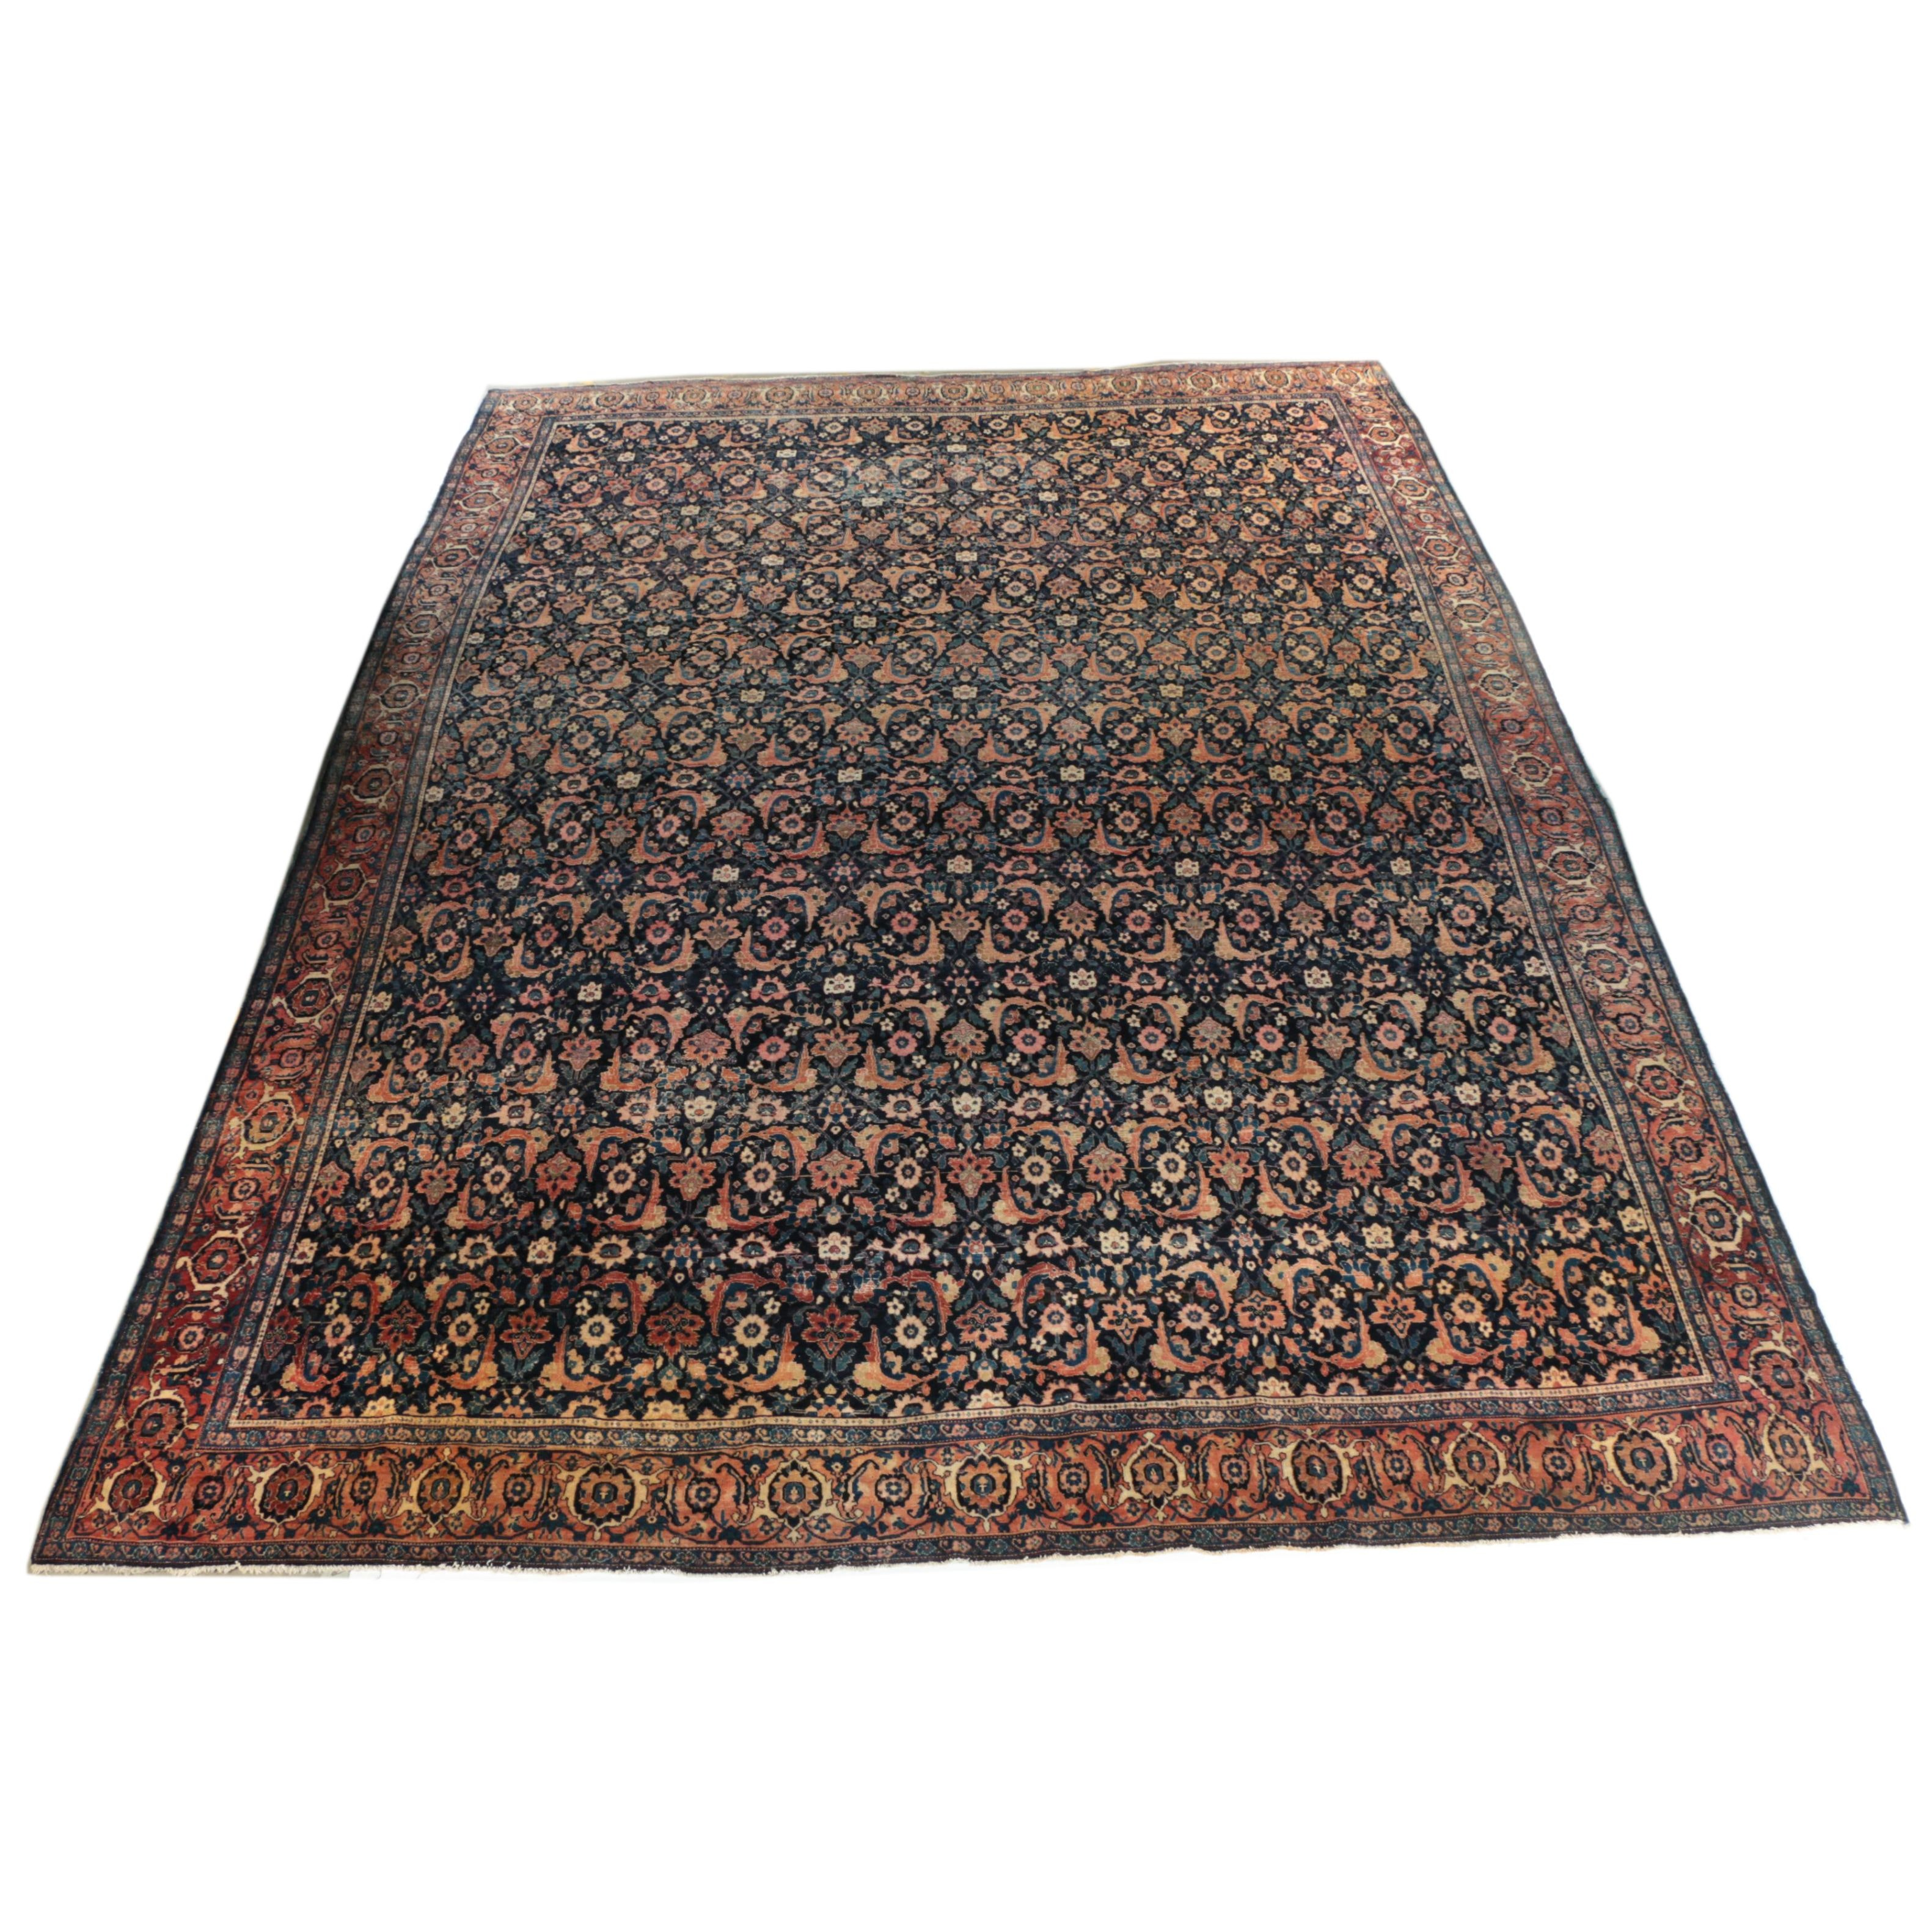 Vintage Hand-Knotted Persian Bijar Wool Palace Size Rug